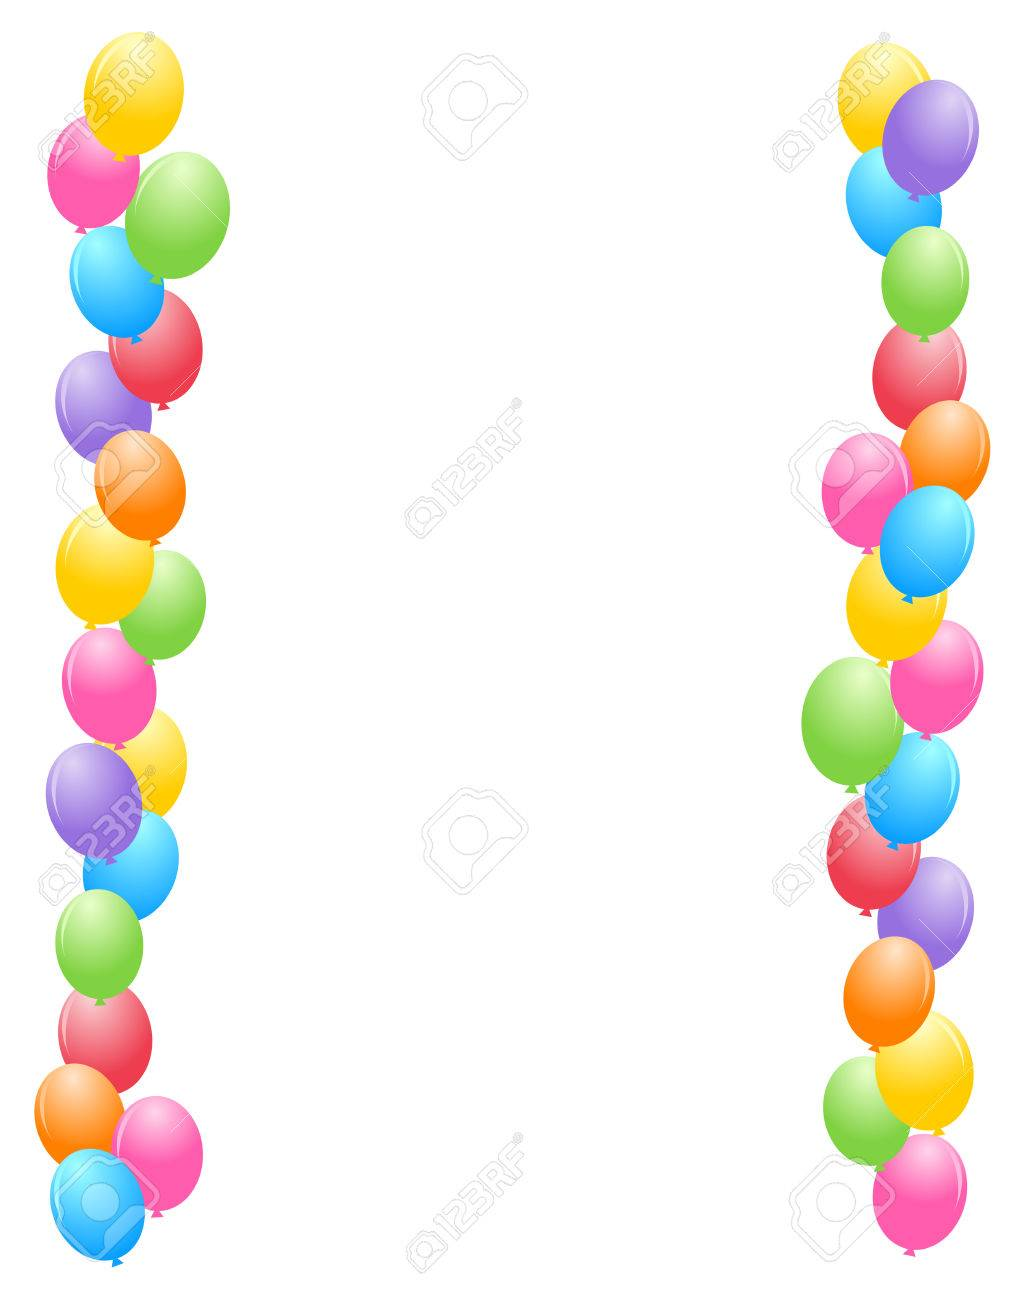 birthday balloons border ; 38545902-colorful-balloons-border-frame-illustration-for-birthday-cards-and-party-backgrounds